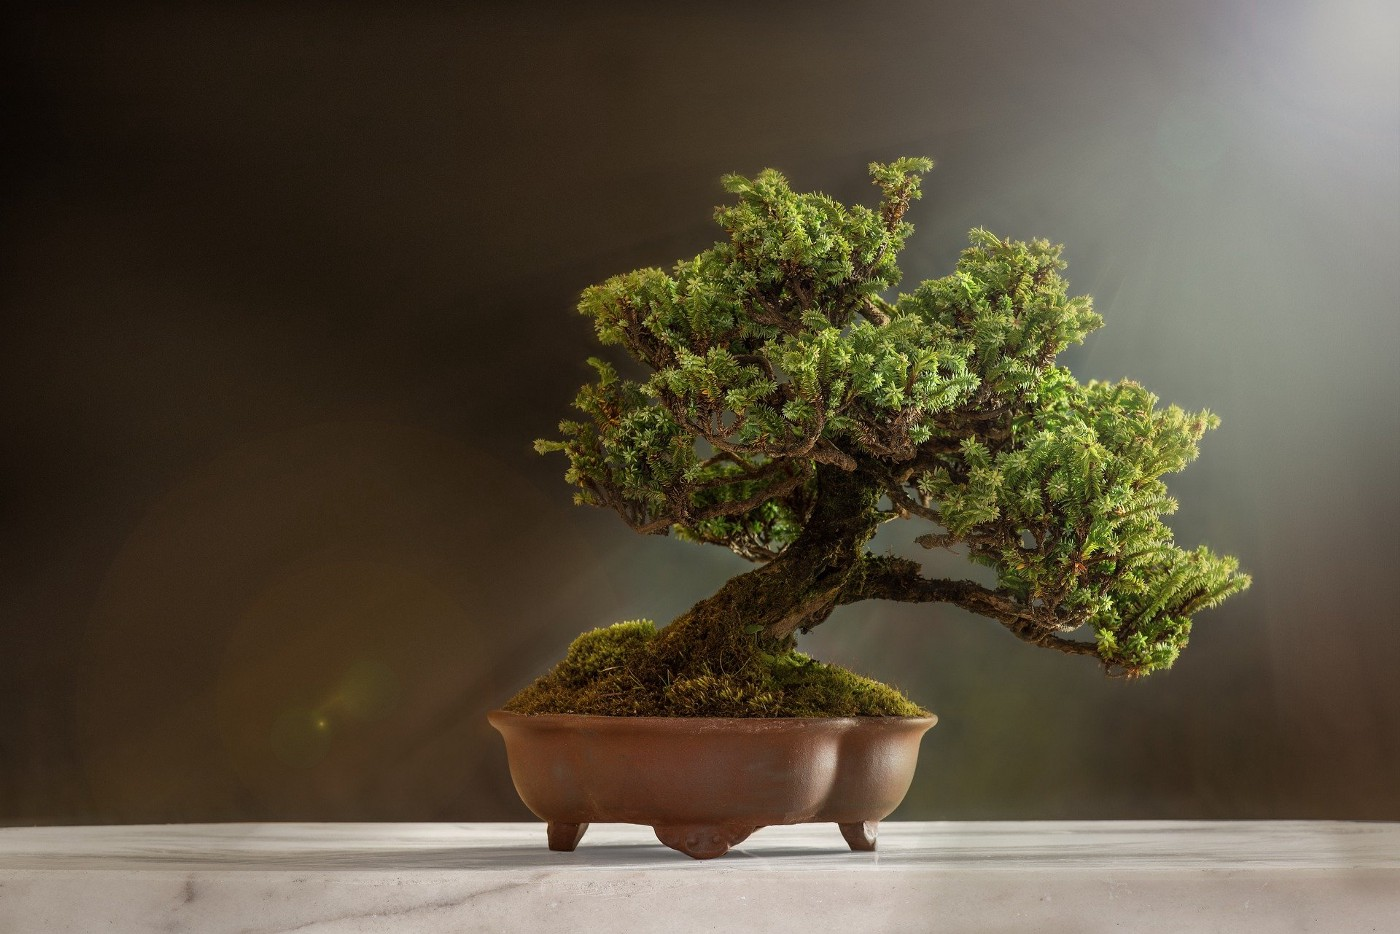 Image of a Bonsai tree on a table